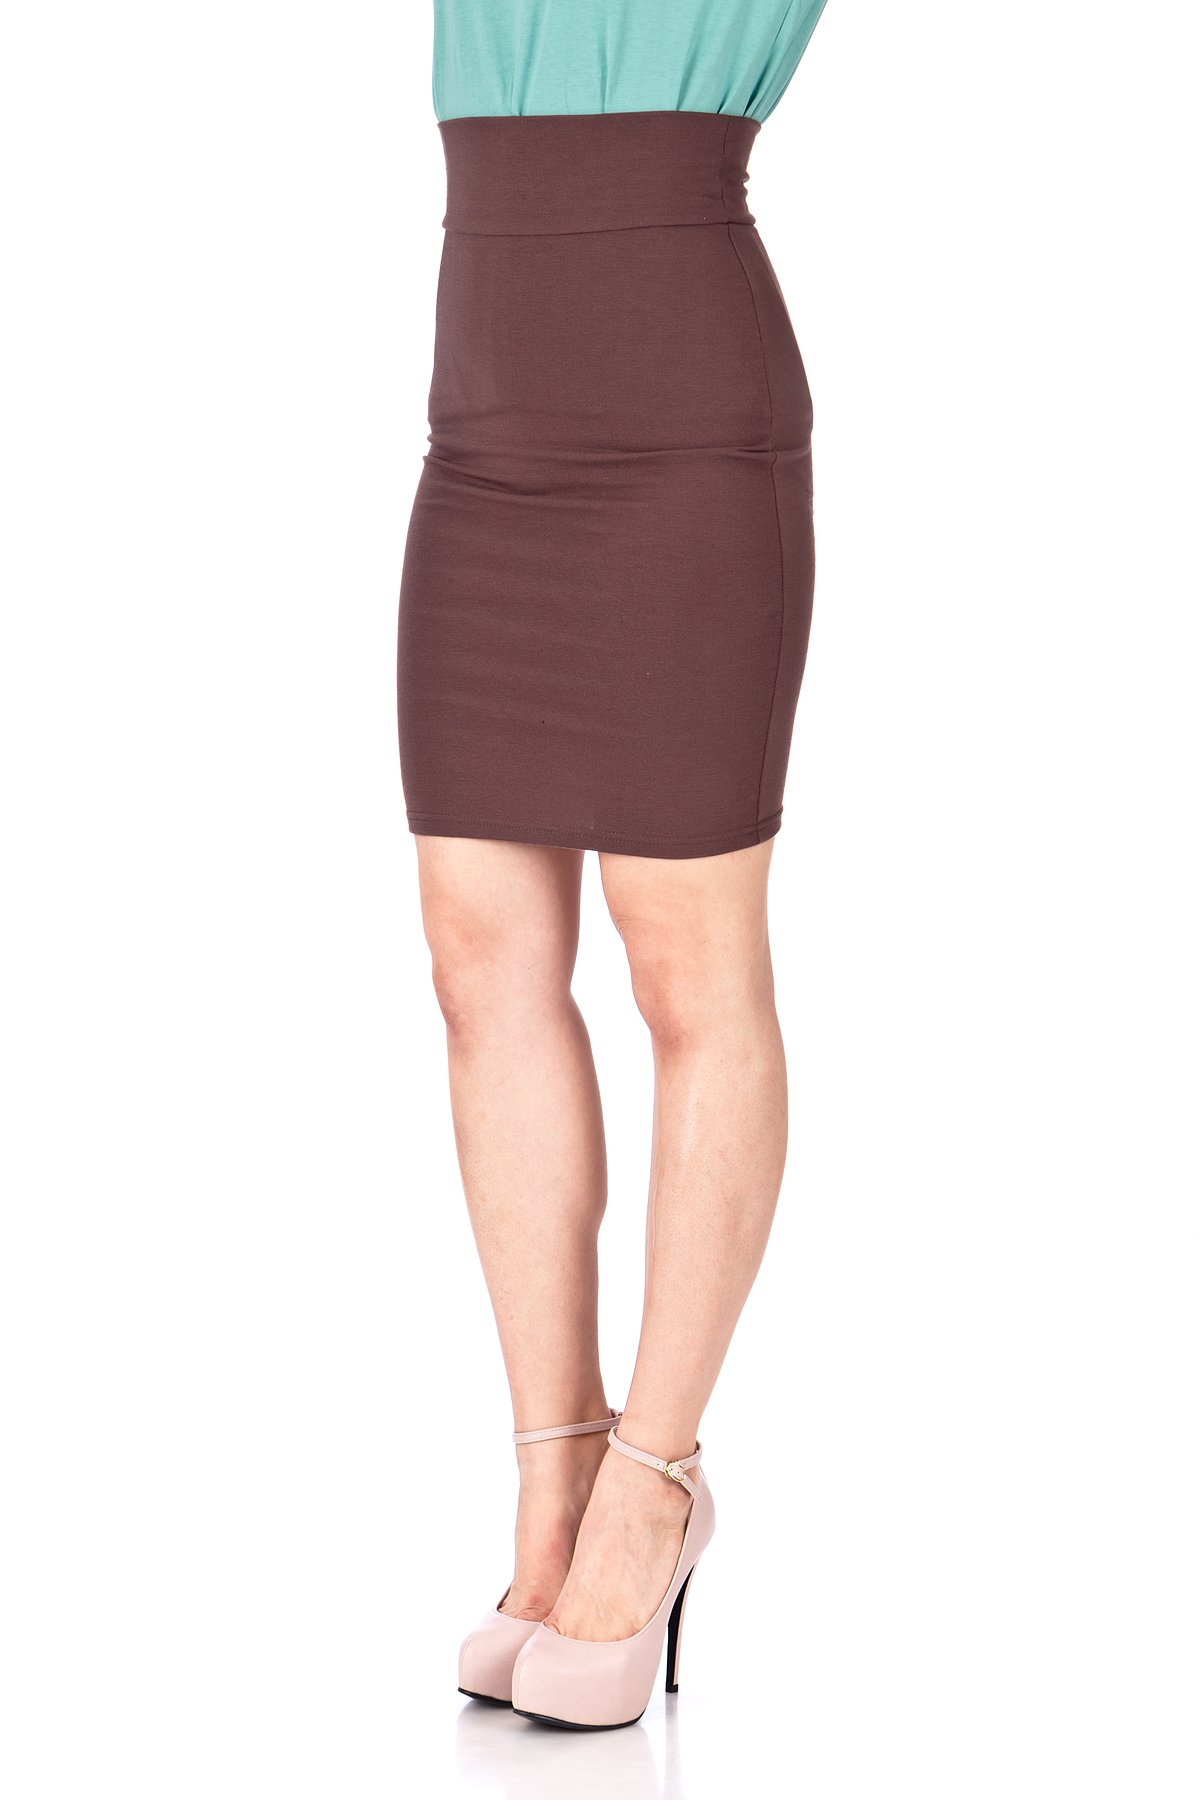 Every Occasion Stretch Pull on Wide High Waist Bodycon Pencil Knee Length Midi Skirt Brown 06